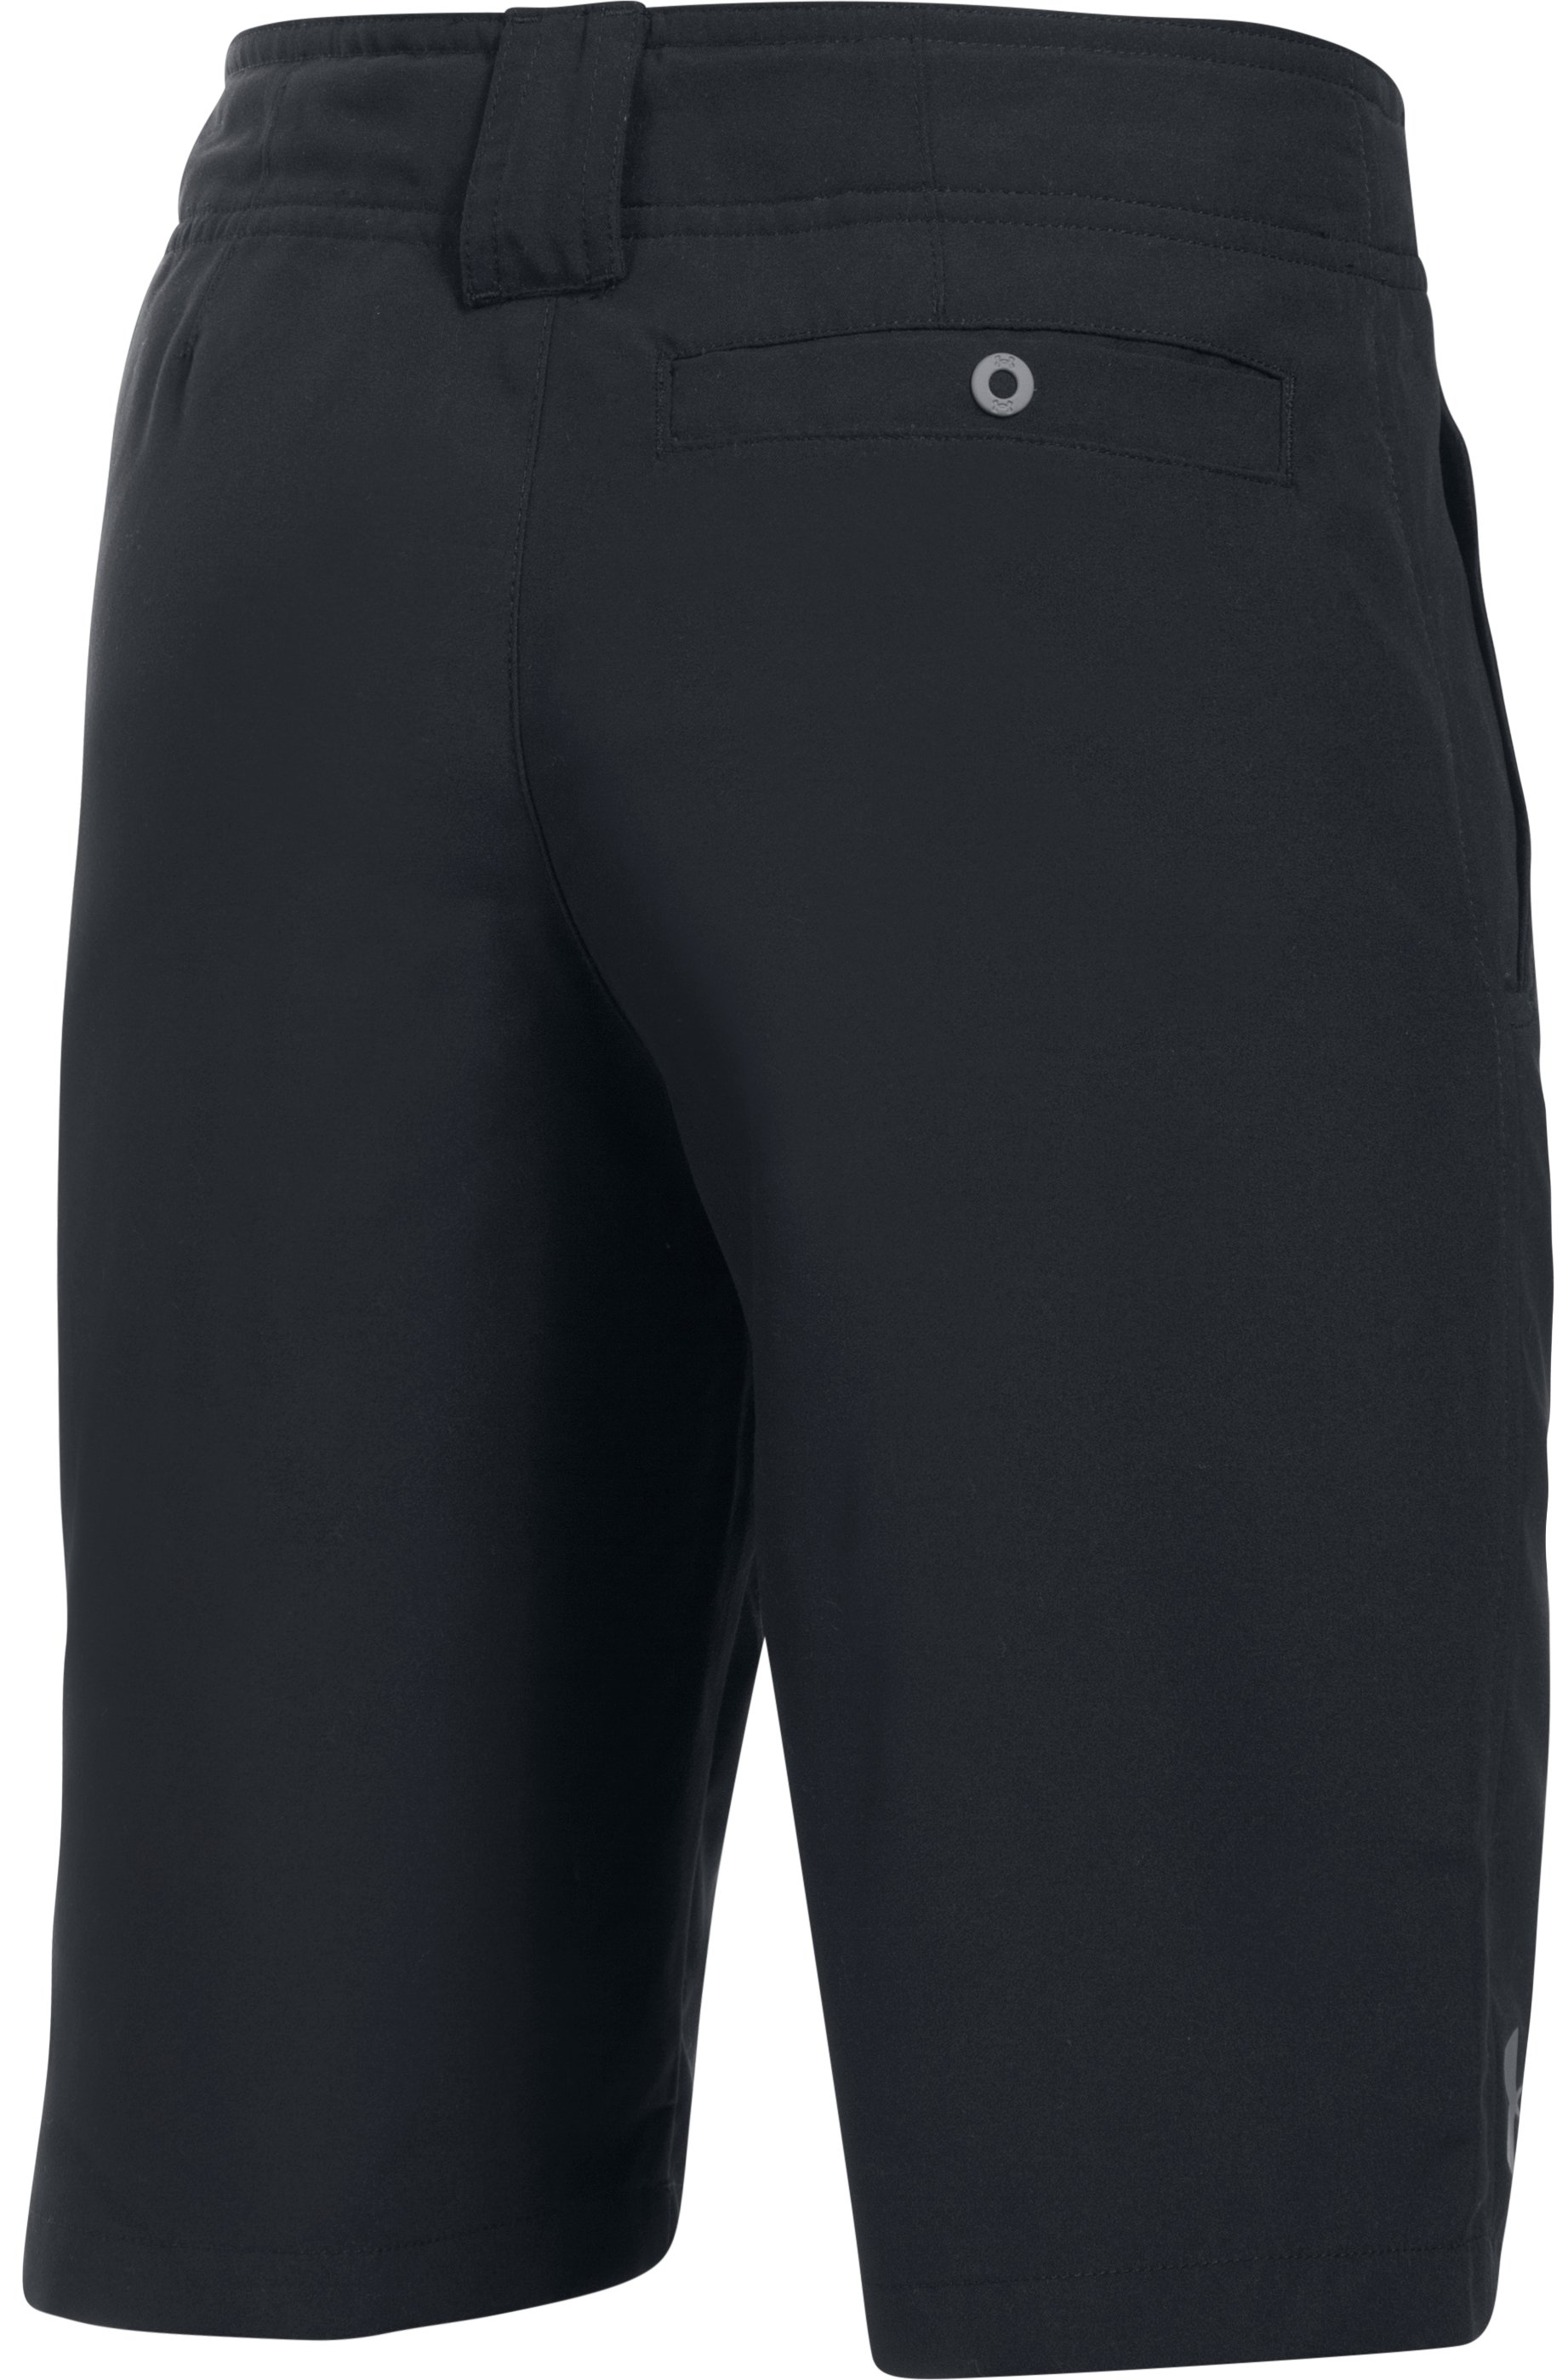 Boys' UA Embarker Amphibious Boardshorts, Black , undefined